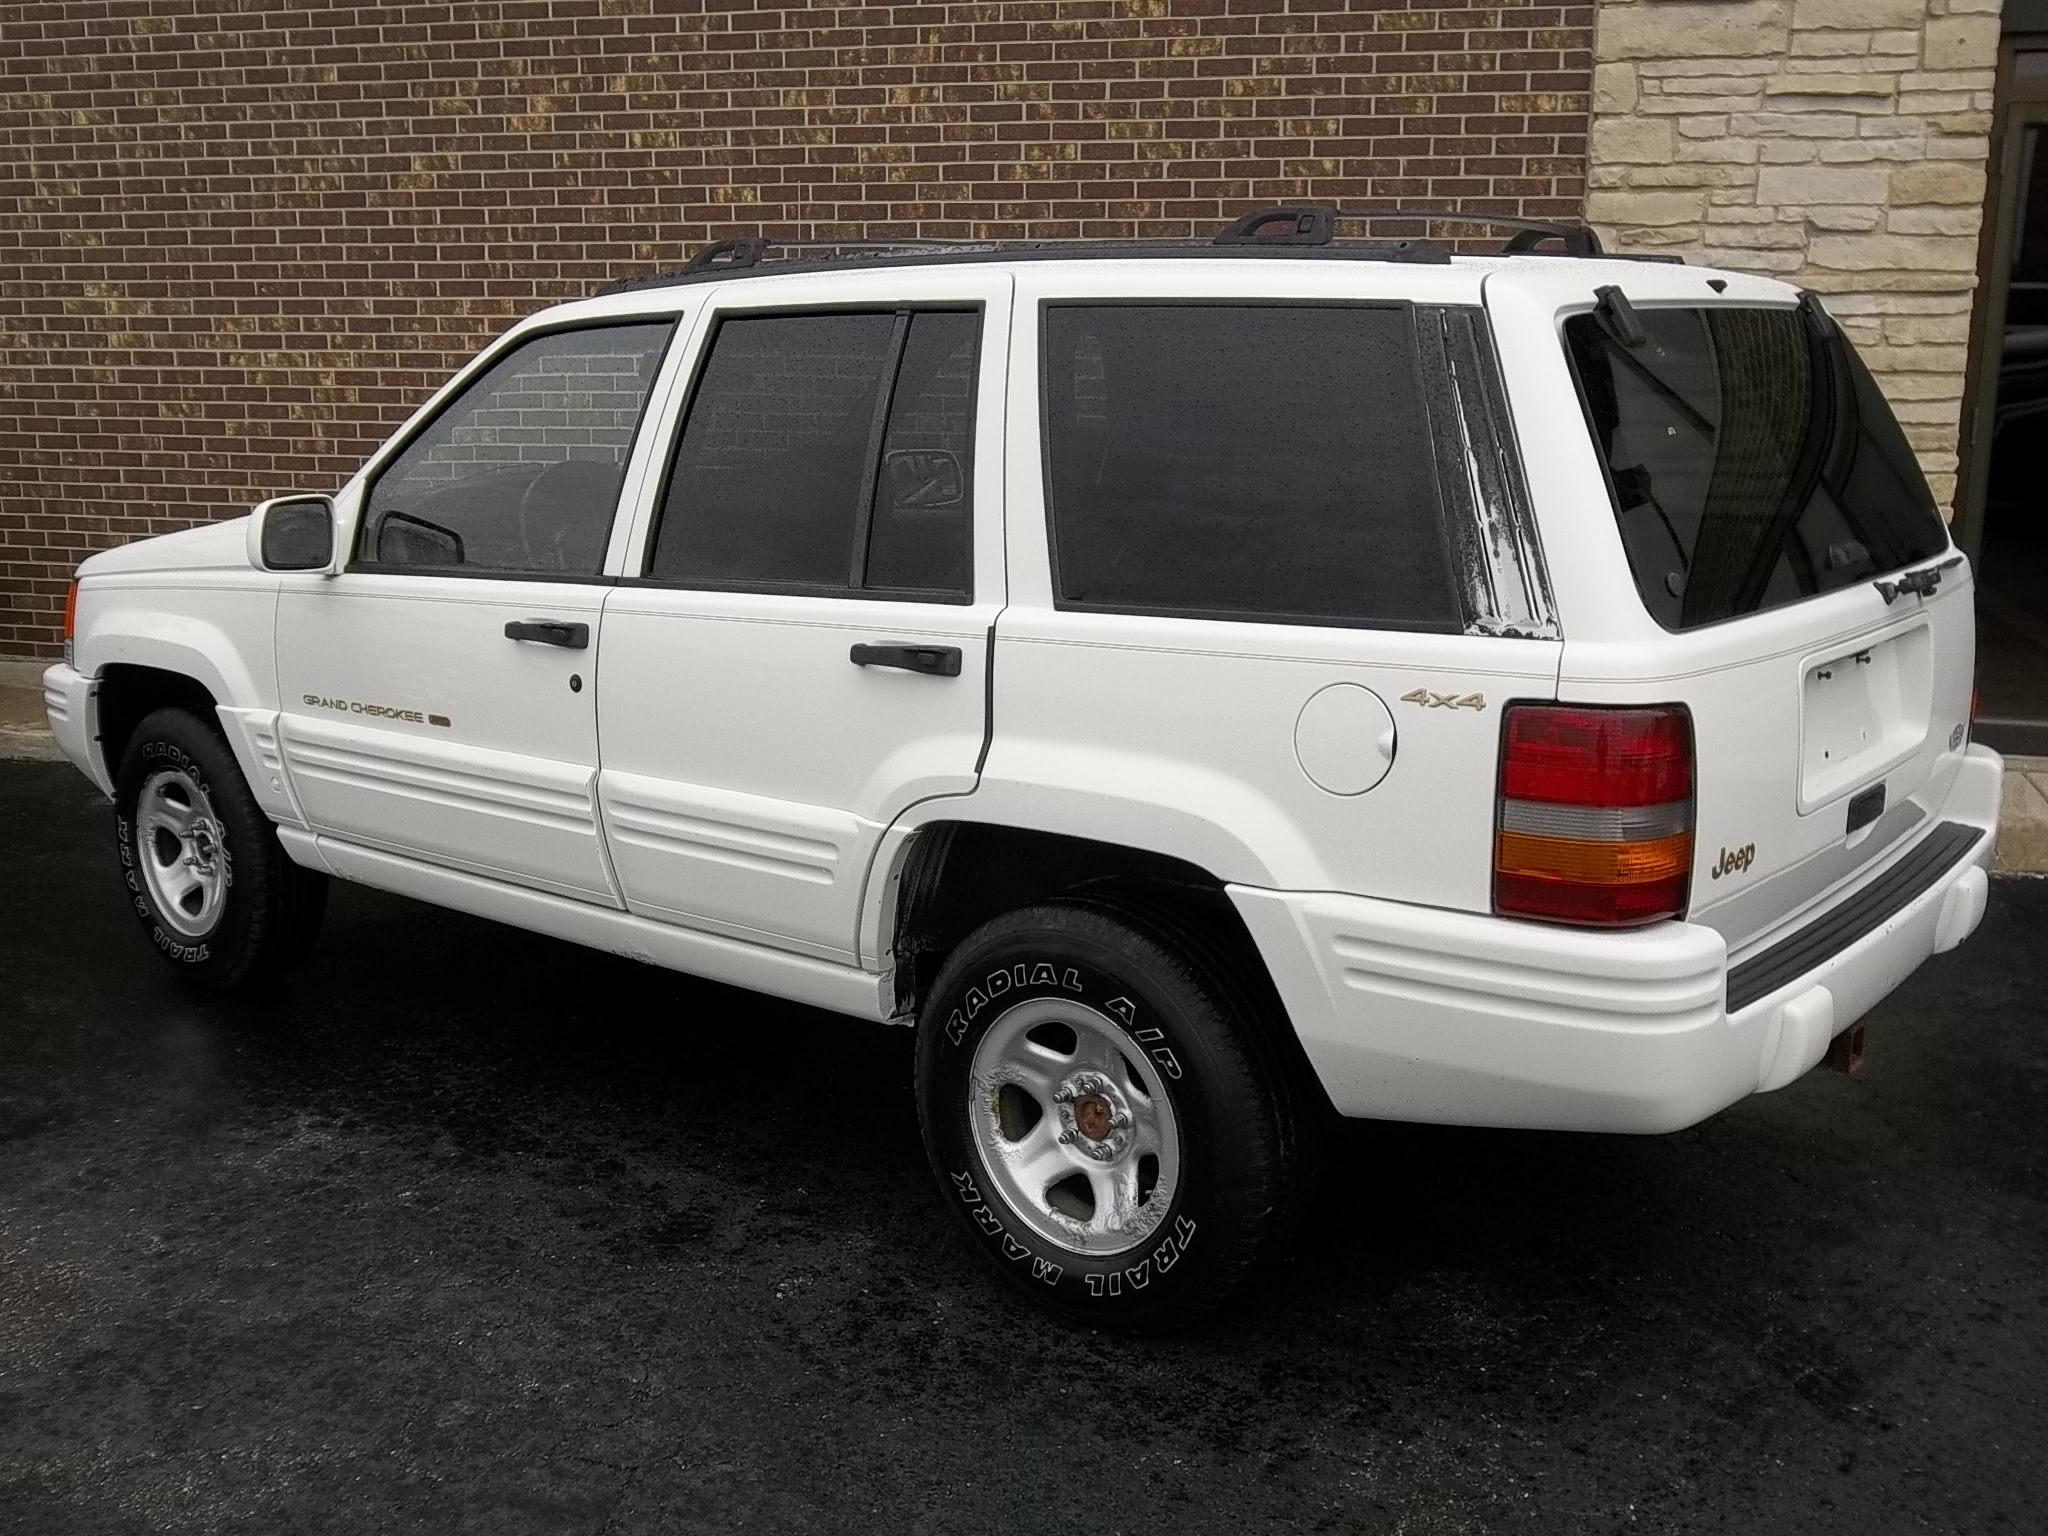 1997 jeep grand cherokee white 200 interior and exterior images. Black Bedroom Furniture Sets. Home Design Ideas